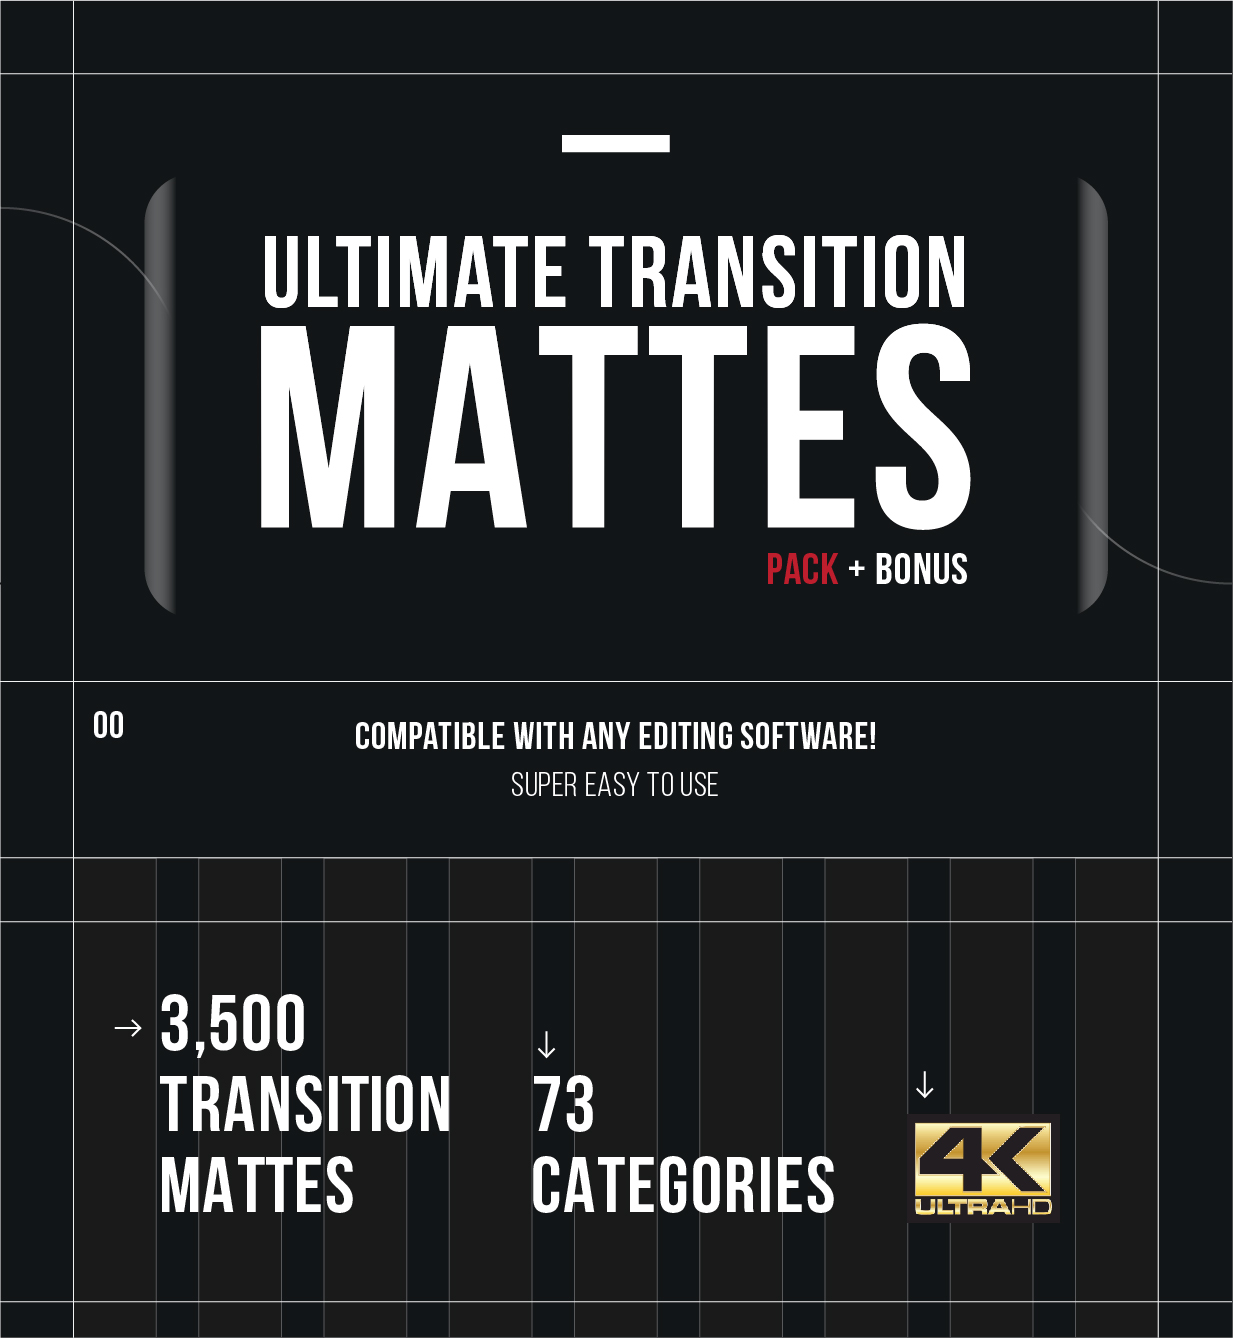 Ultimate Transition Mattes Pack - 1